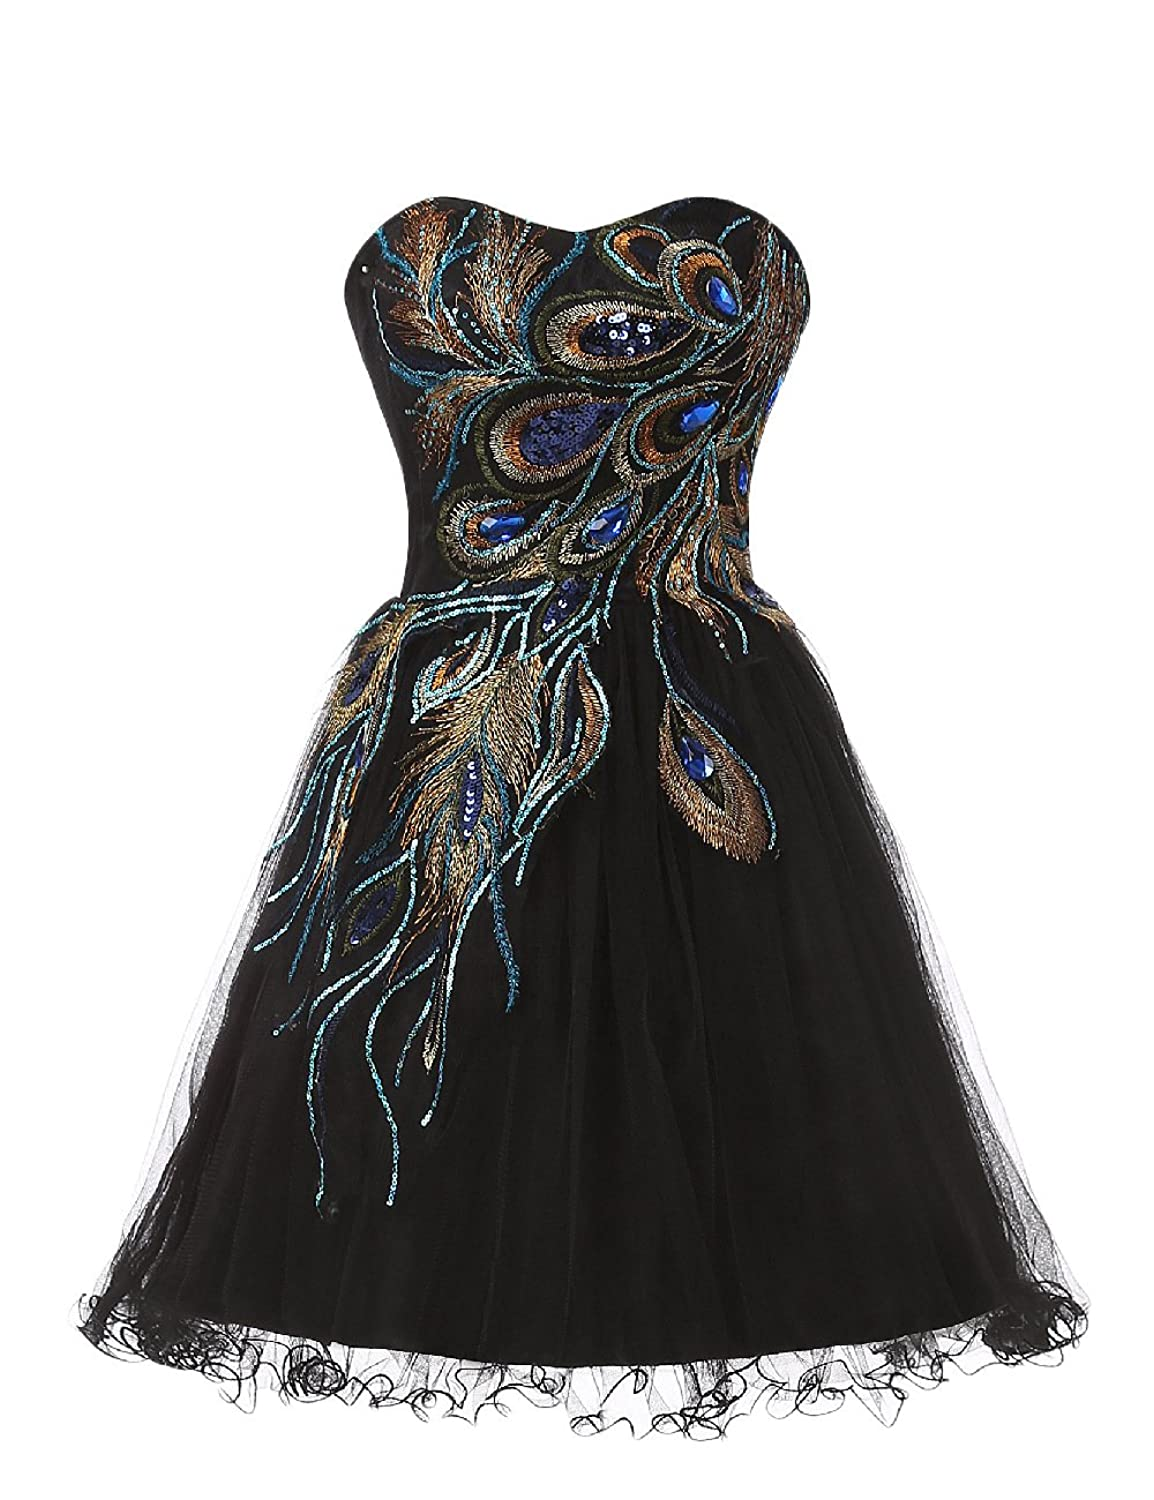 VIVIANSBRIDAL Sweetheart Short Embroidery Tulle Prom Homecoming Dress Black